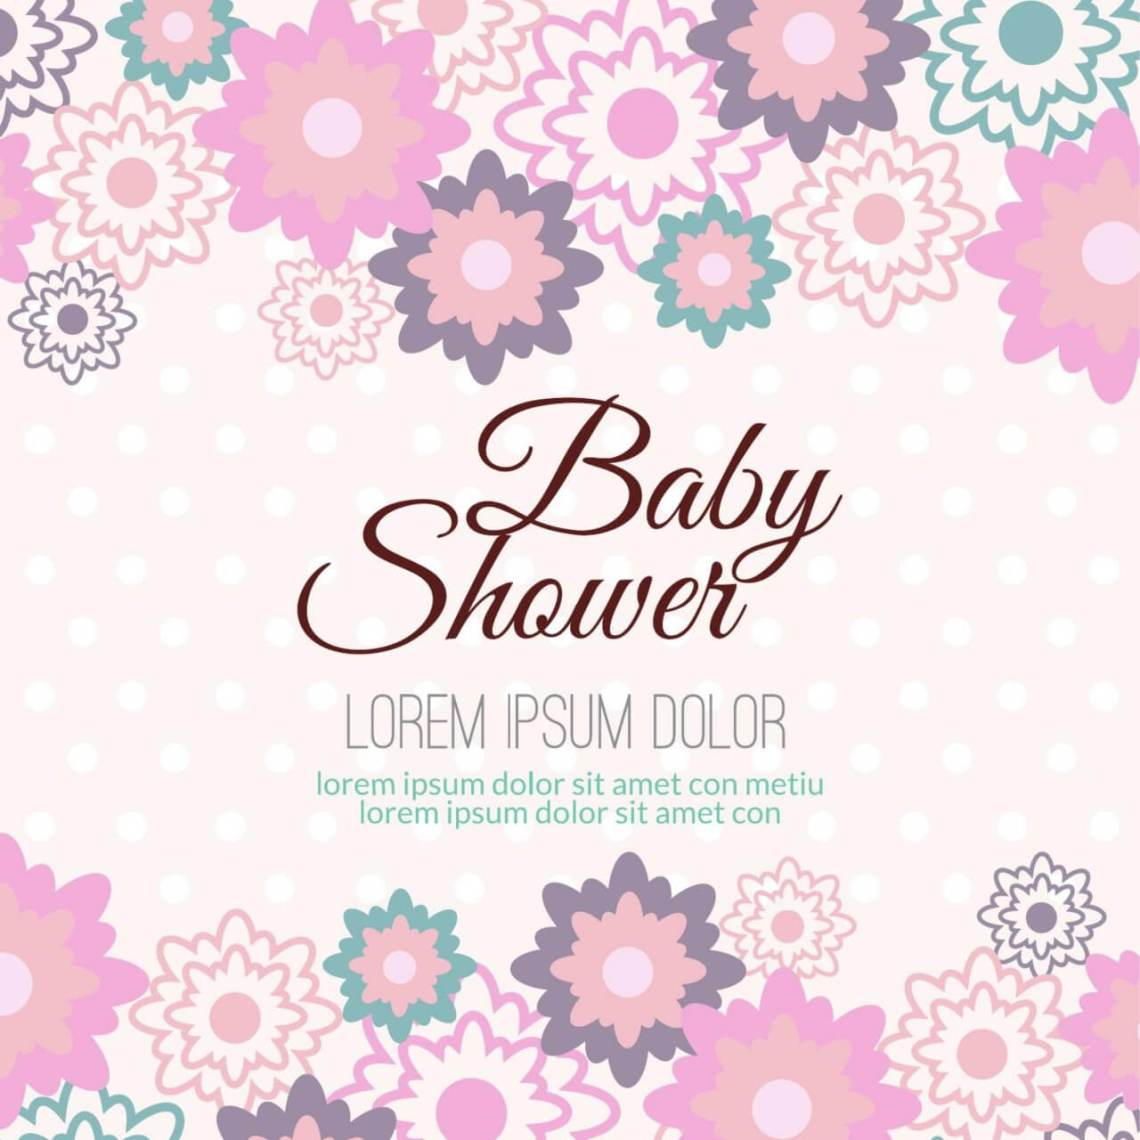 """Download Free vector """"Baby shower with floral background"""""""